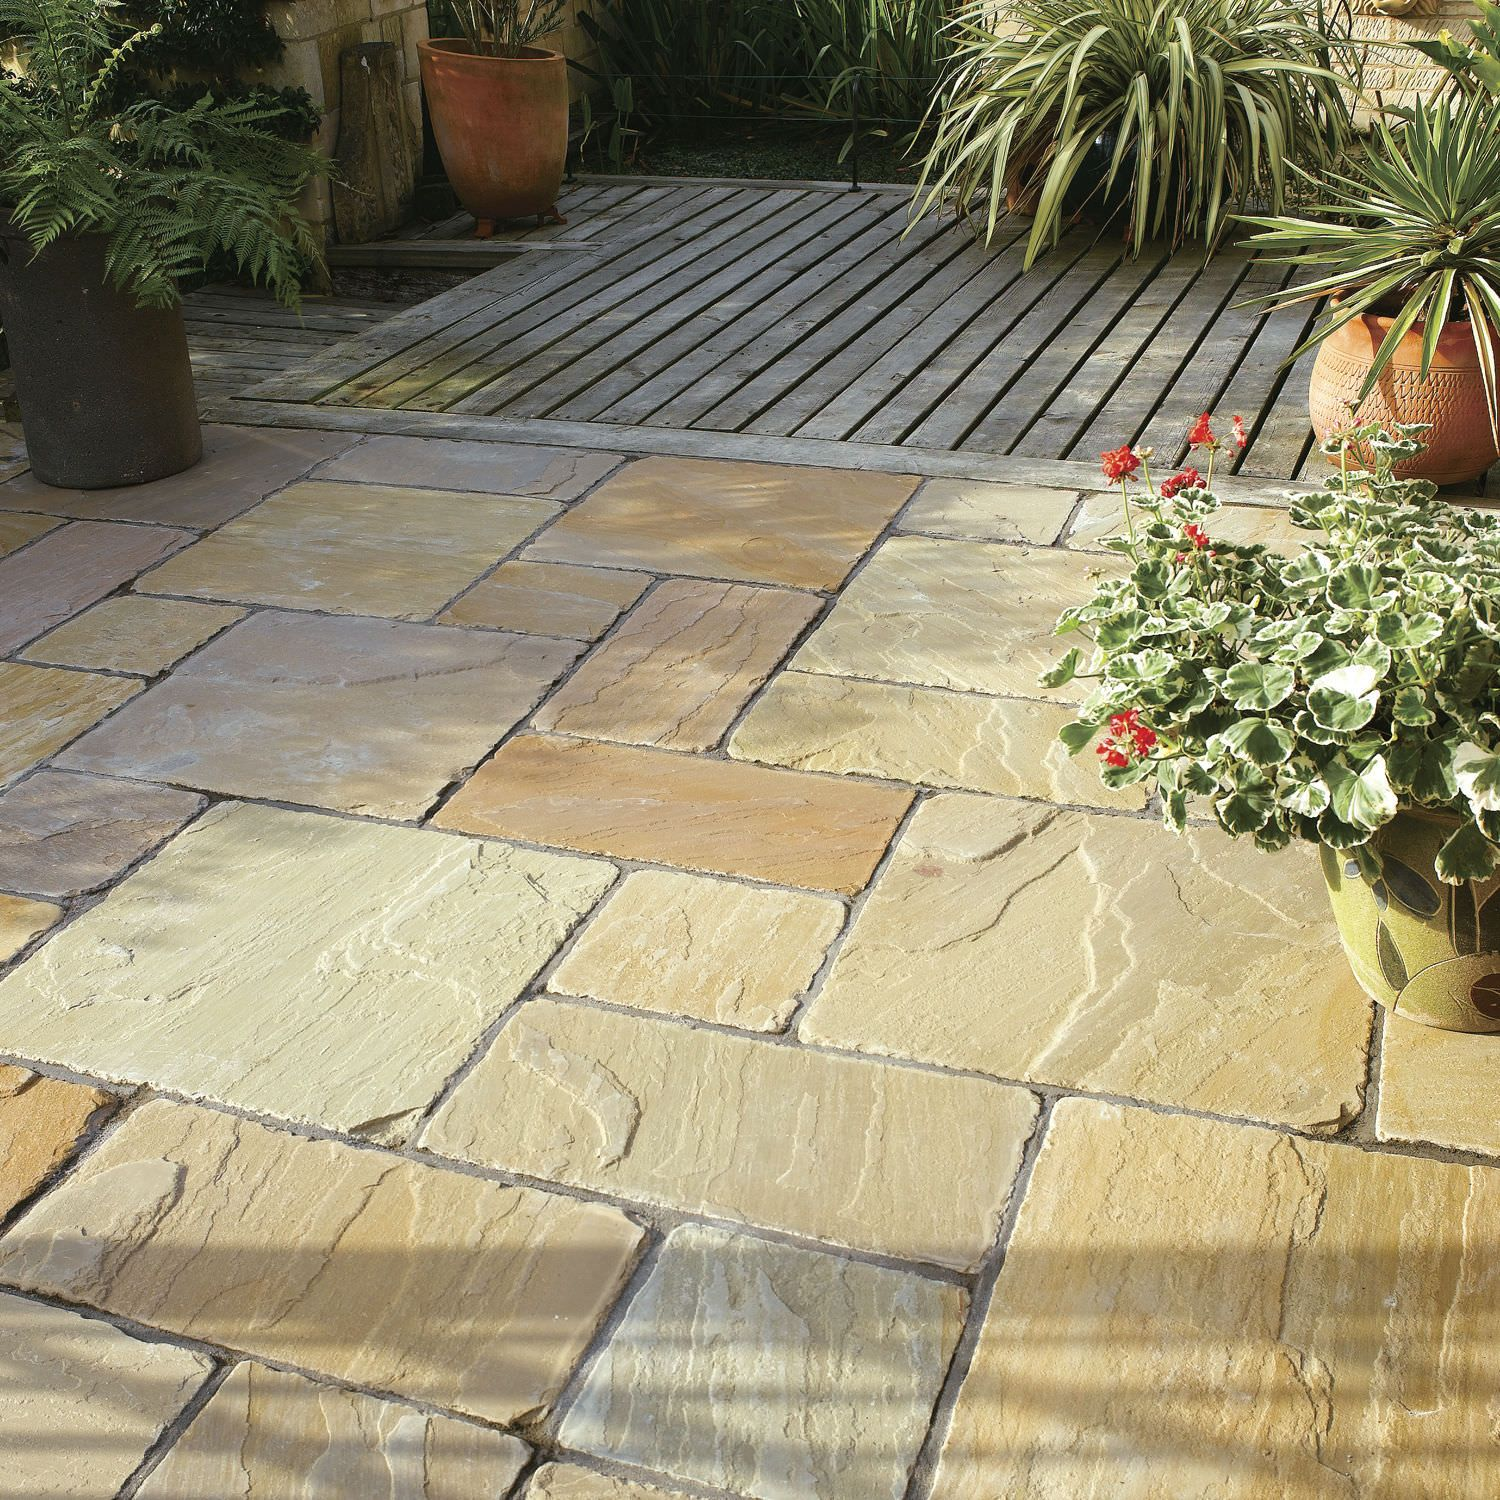 Outdoor tile garden for floors engineered stone antique outdoor tile garden for floors engineered stone antique natural sandstone bradstone dailygadgetfo Images